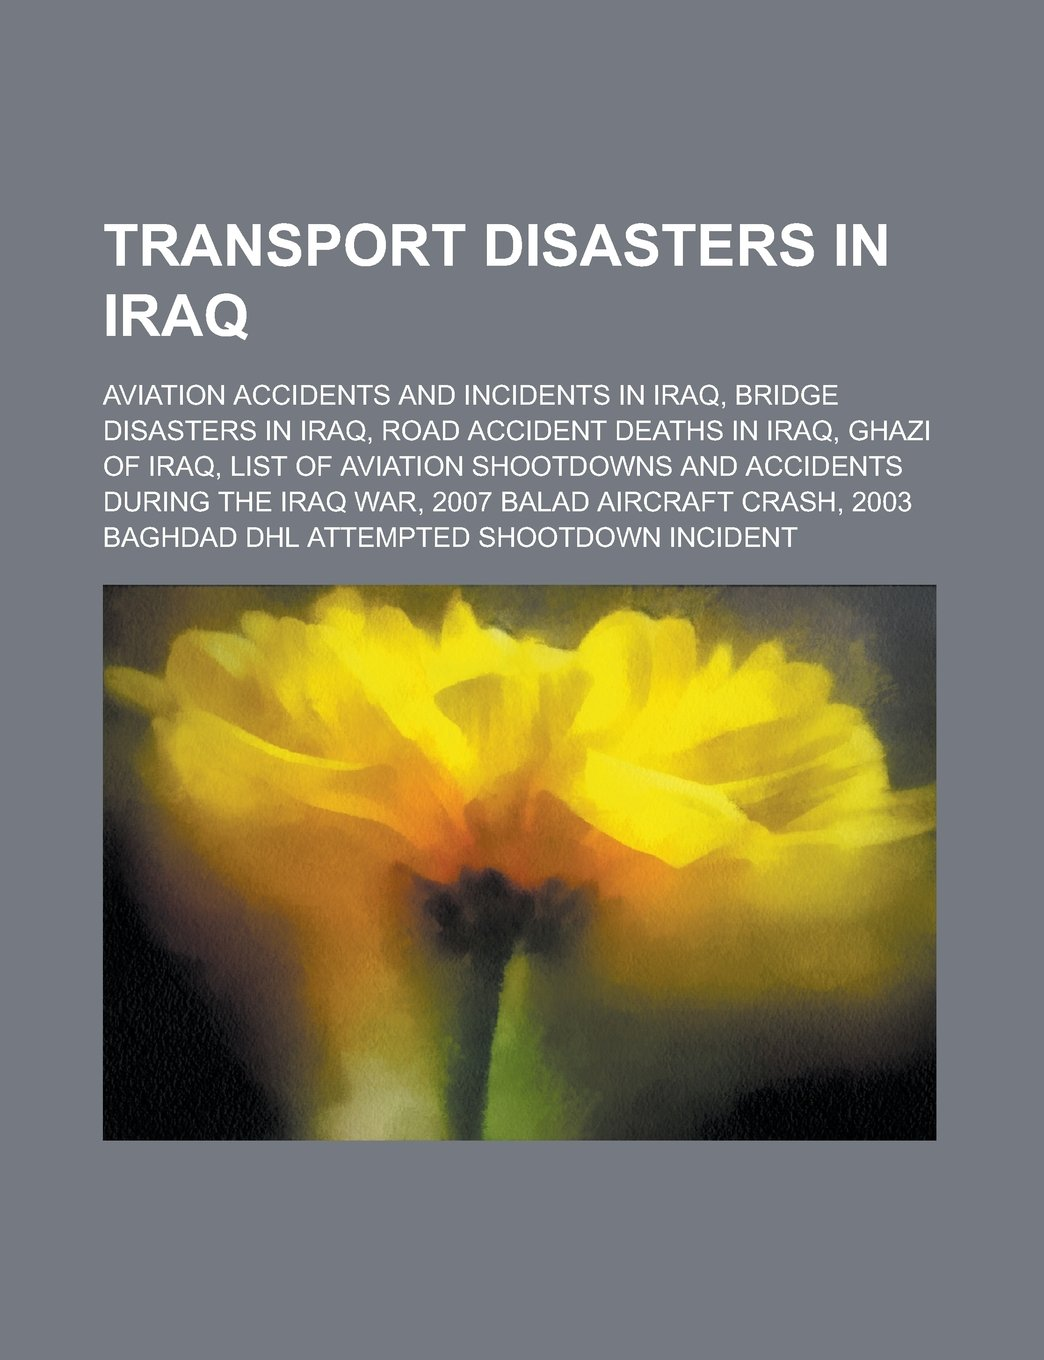 List of aviation shootdowns and accidents during the Iraq War